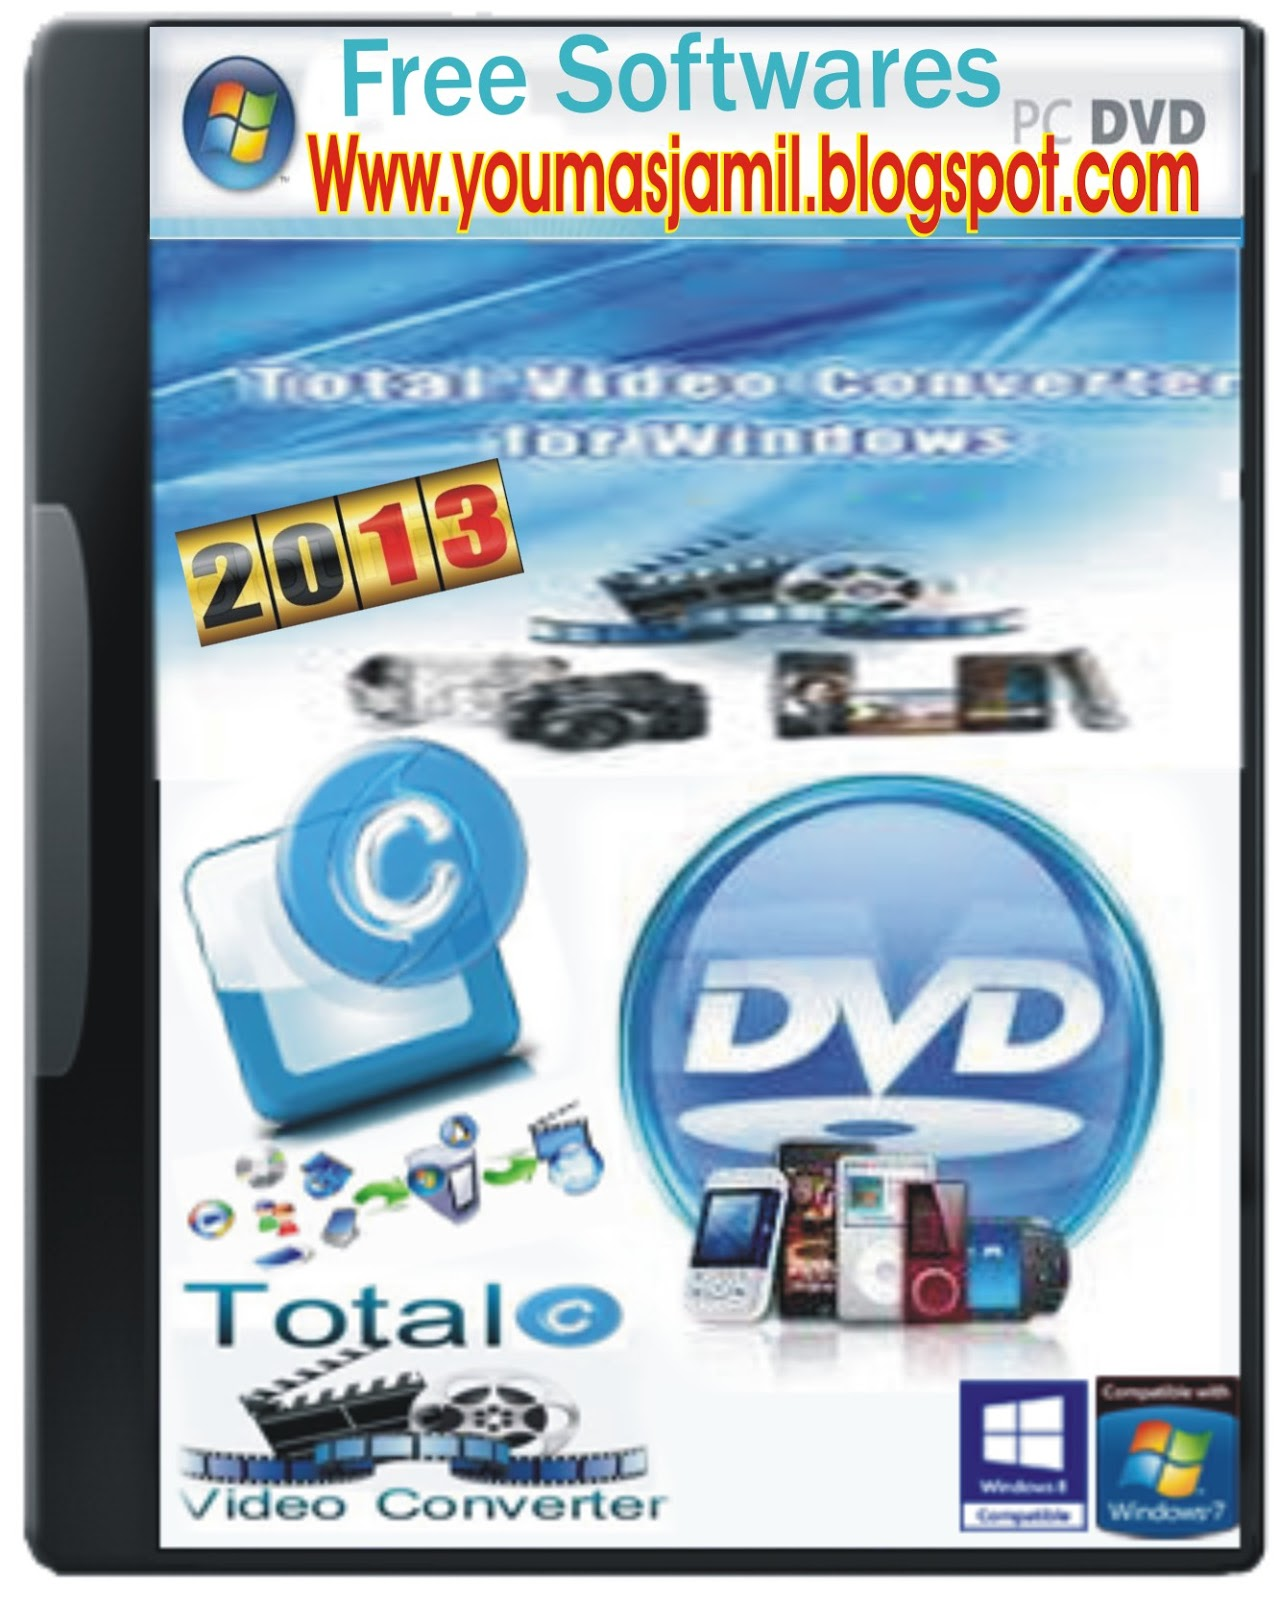 Total Video Converter Latest Version Free Download